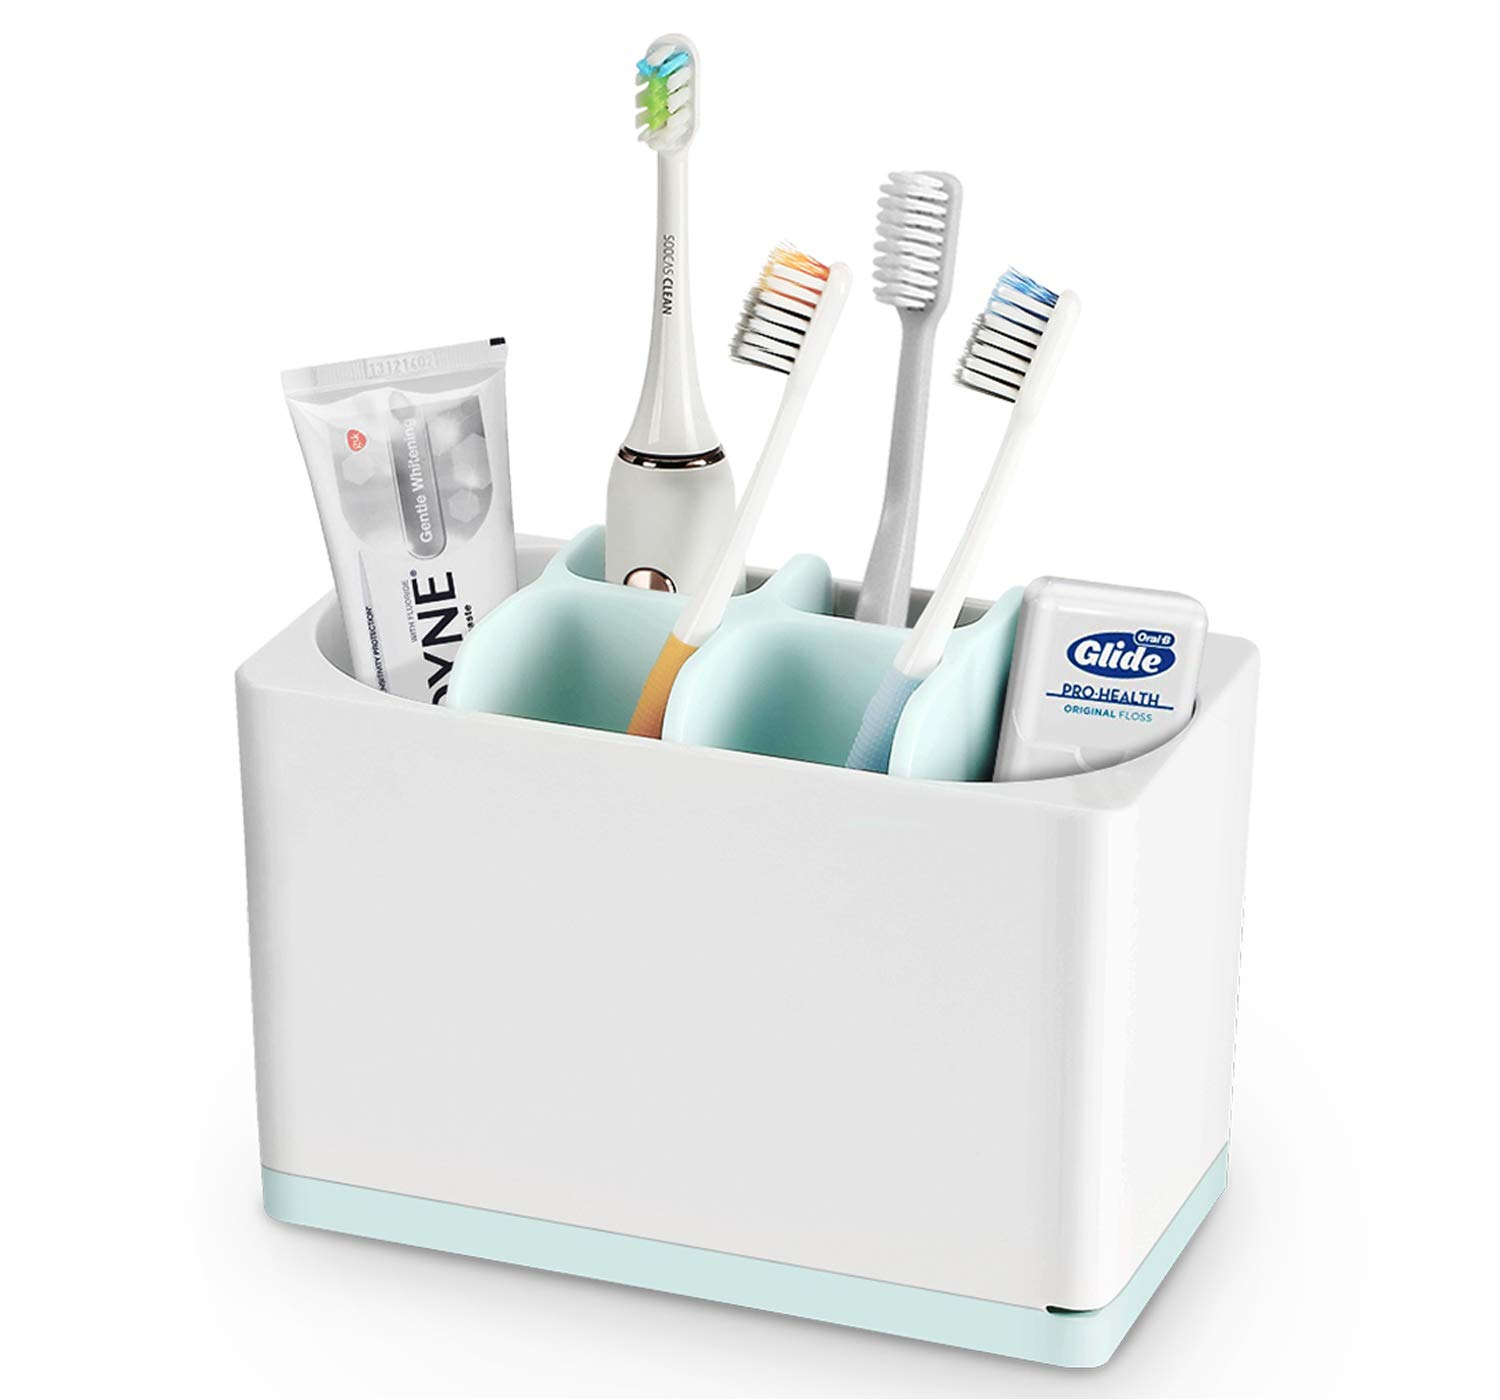 Luvan Toothbrush Holder Made of Food-Grade PP and ABS Plastic,BPA-Free&FDA Approved,Versatile Storage,Detachable for Easy Cleaning,Ideal for Regular/Electric Toothbrushes, Toothpaste Tubes etc by Luvan